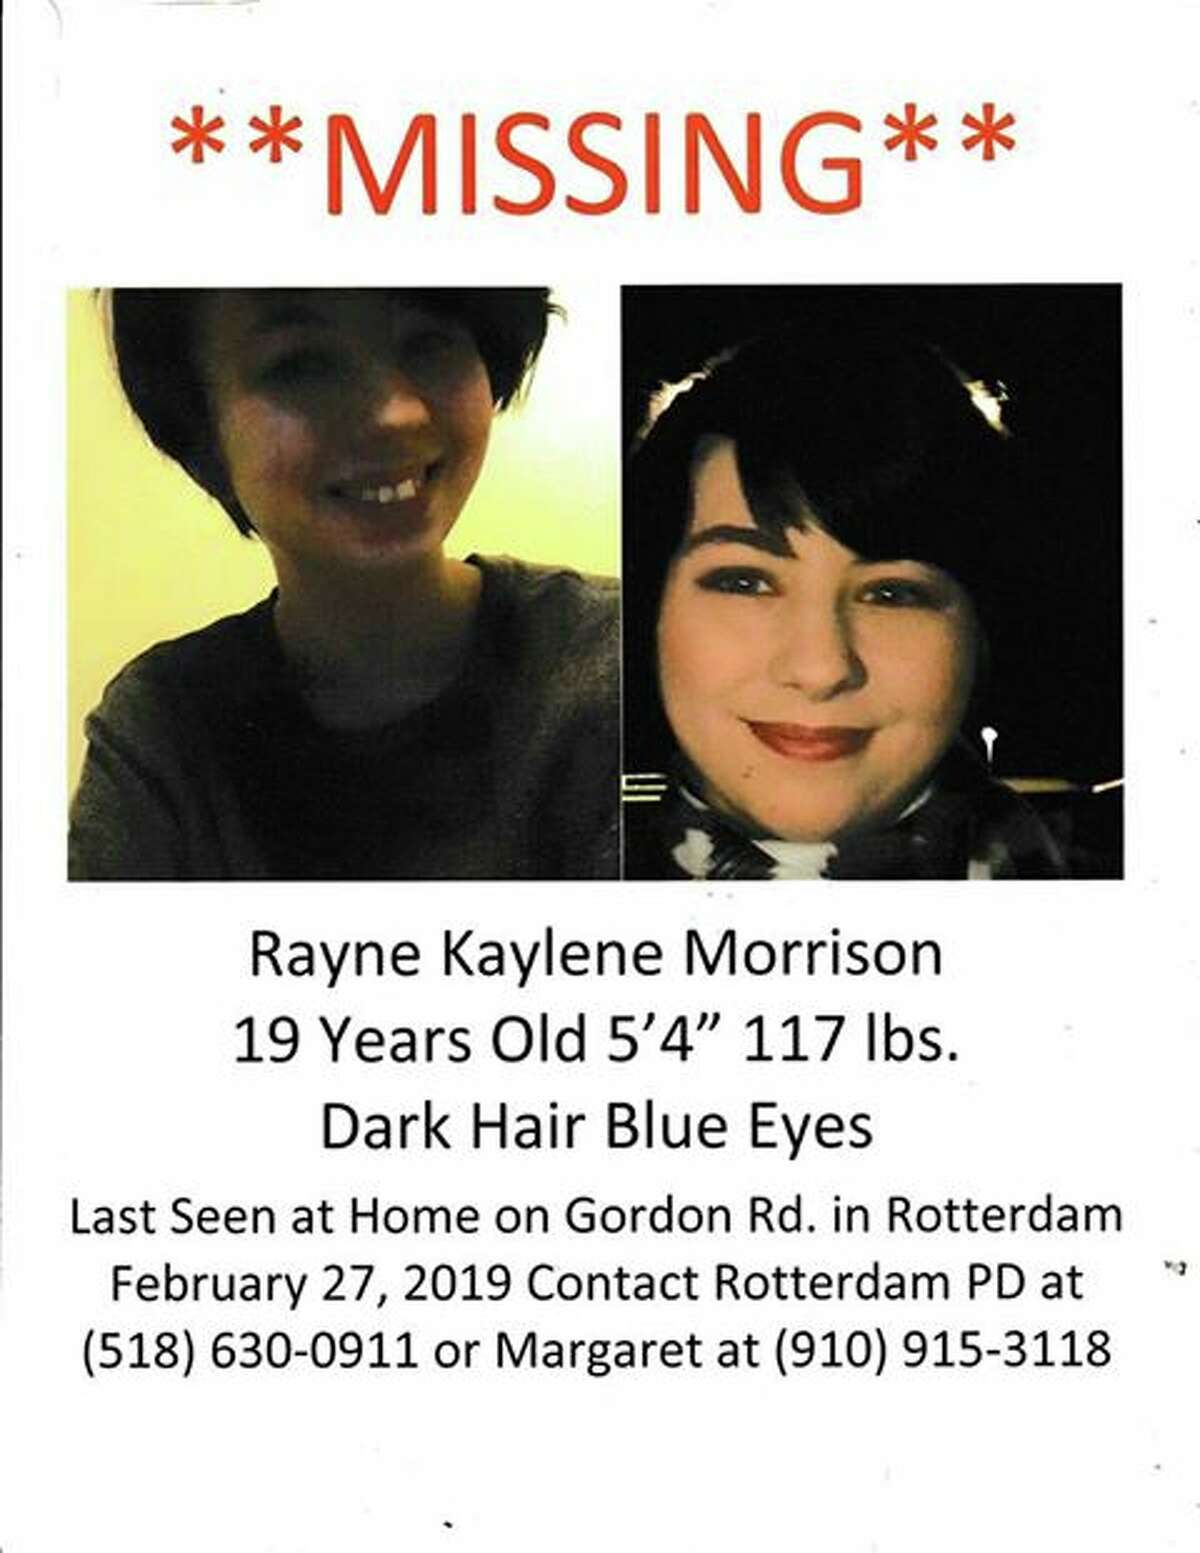 Rayne Kaylene Morrison, 19, has been missing from Rotterdam, N.Y., since Feb. 27, 2019.